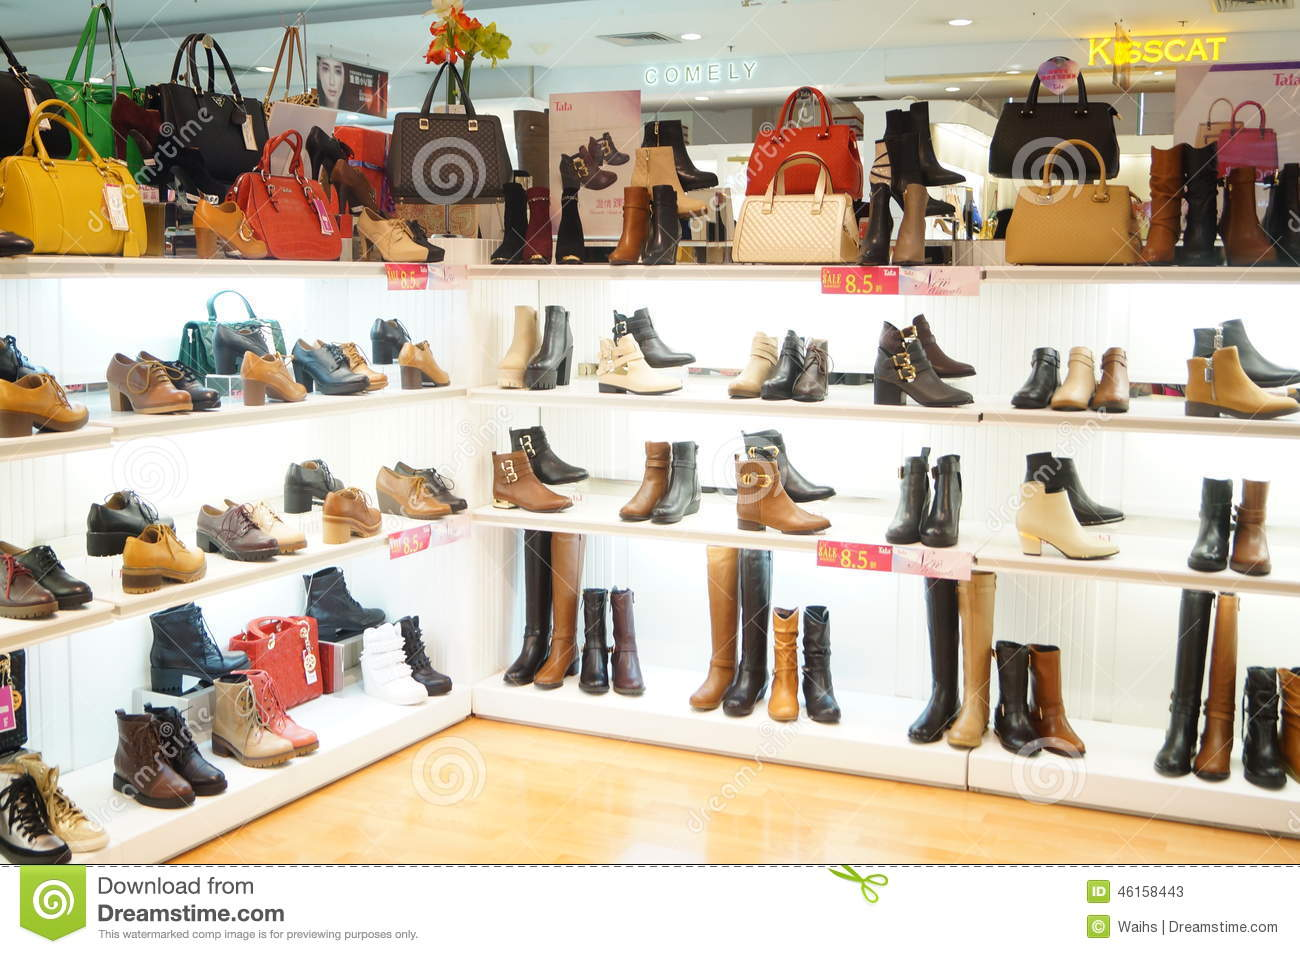 U.S. Women's Shoe Sizes to Inches Conversion Chart